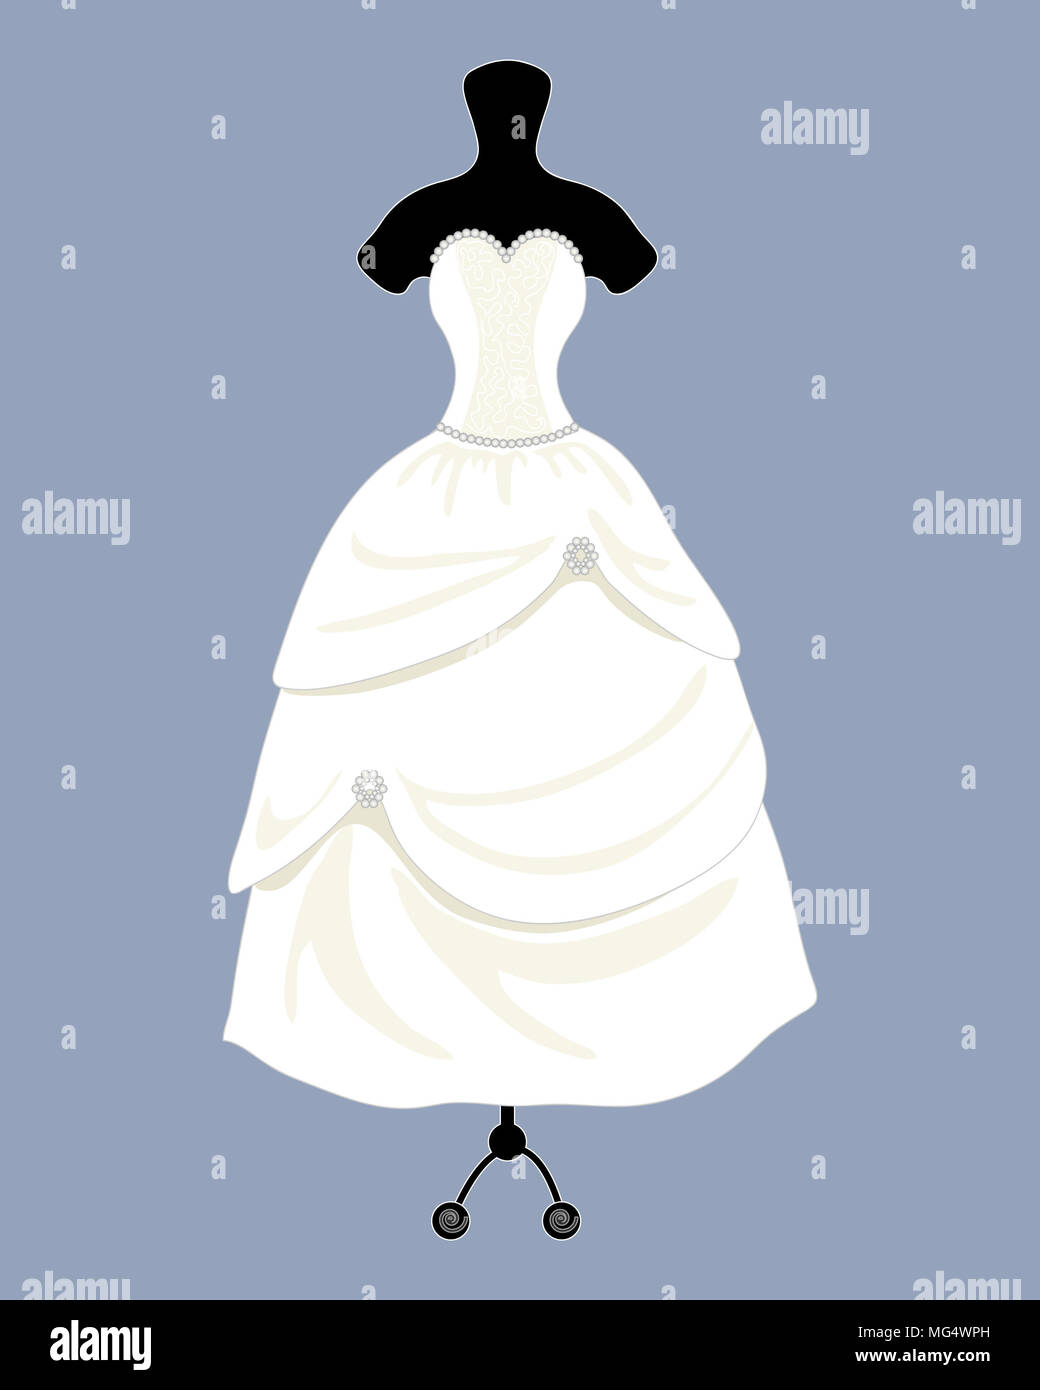 An Illustration Of A Beautiful Designer Wedding Dress In A Fancy Ball Gown Style With A Full Skirt On A Blue Background Stock Photo Alamy